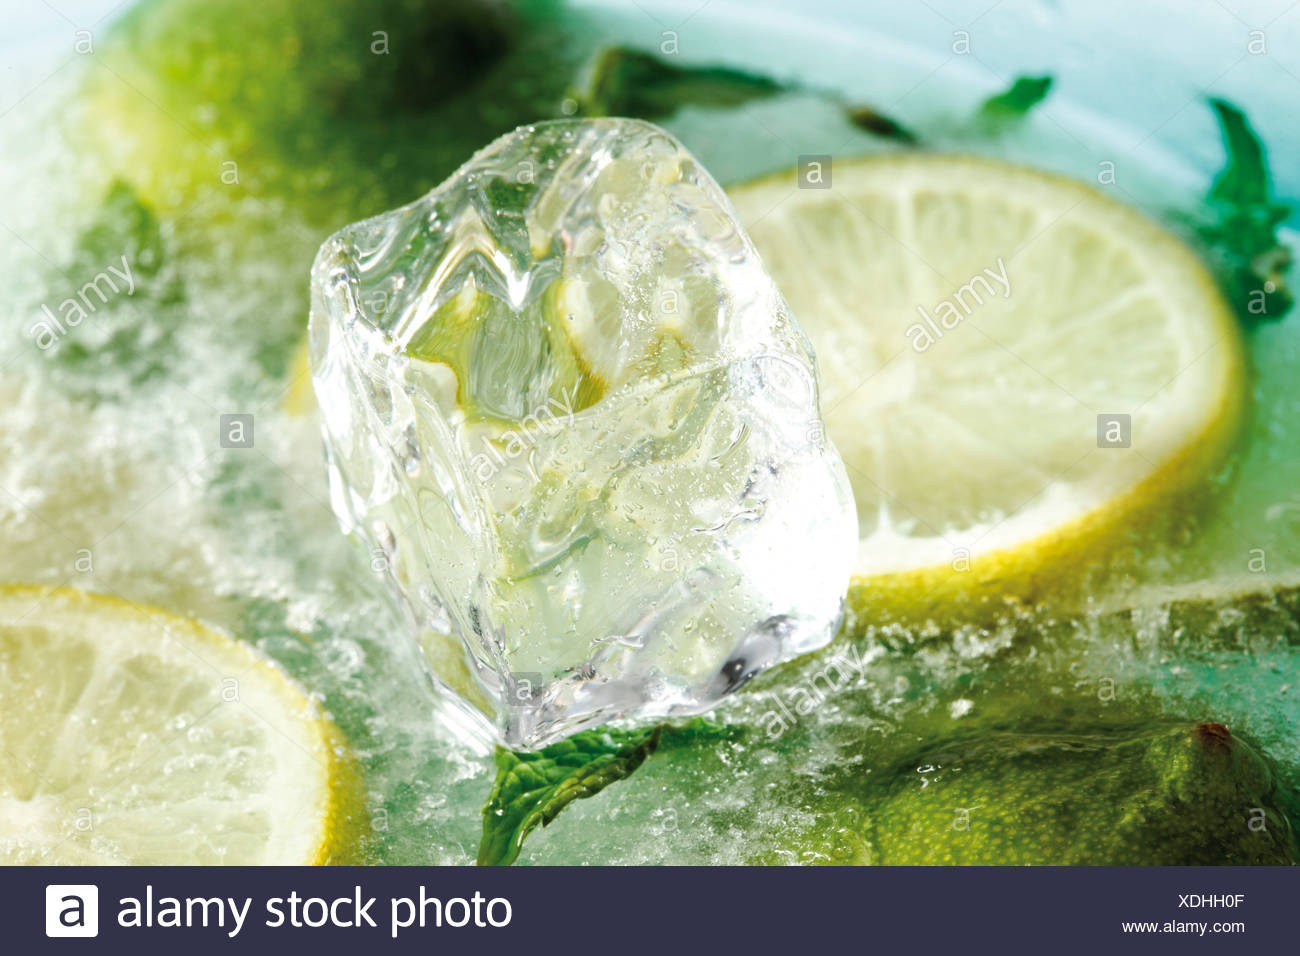 Frozen lemon slices, lime slices and ice cubes - Stock Image